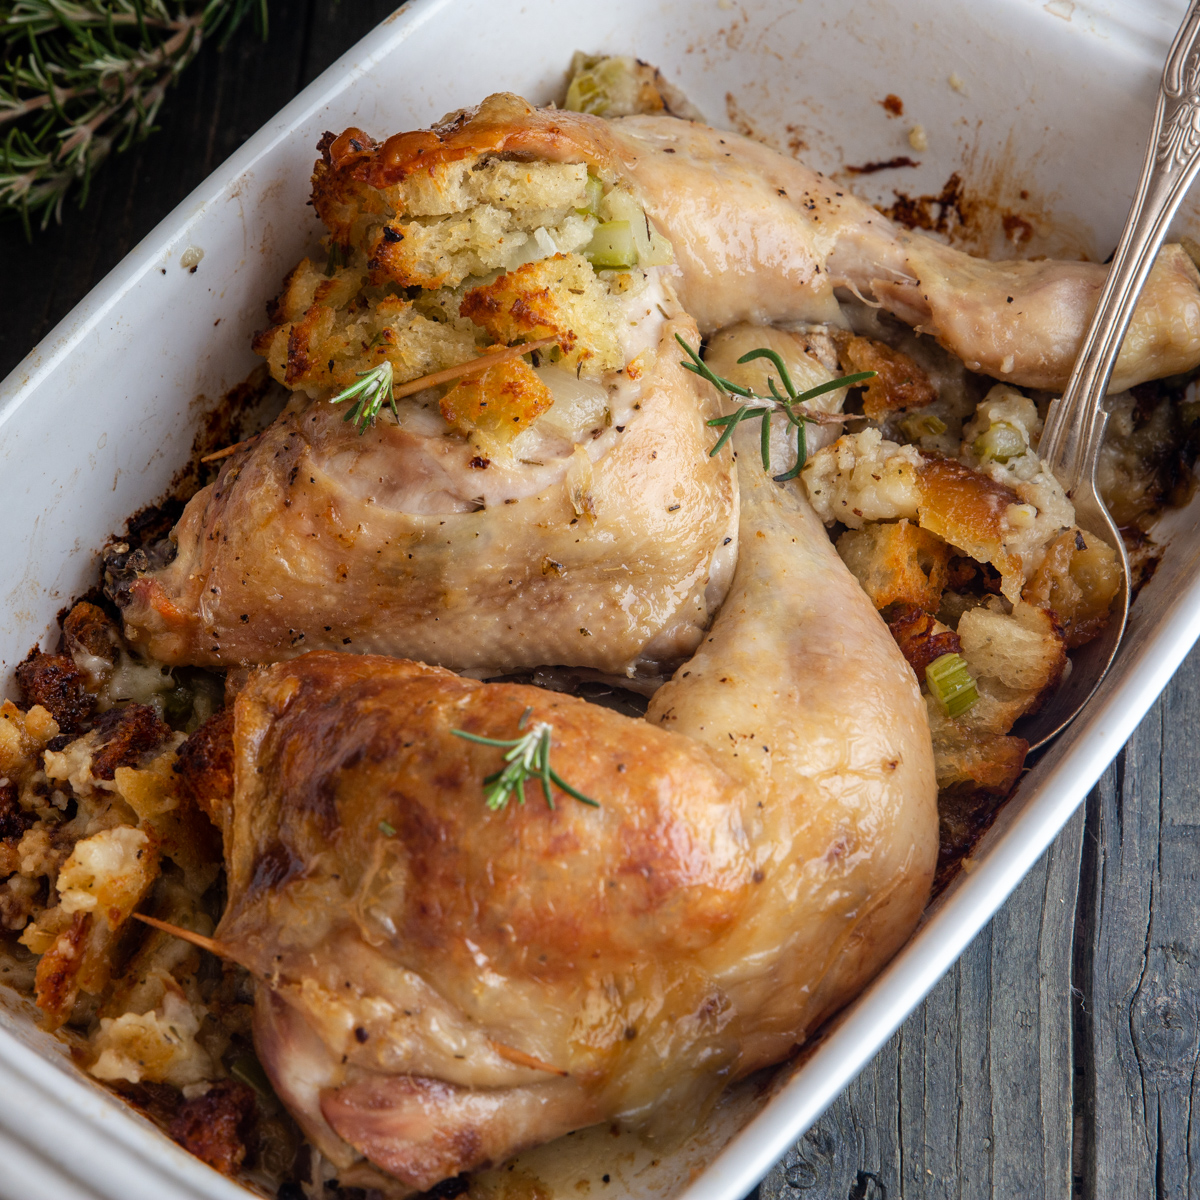 2 whole chicken legs with stuffing in a white pan